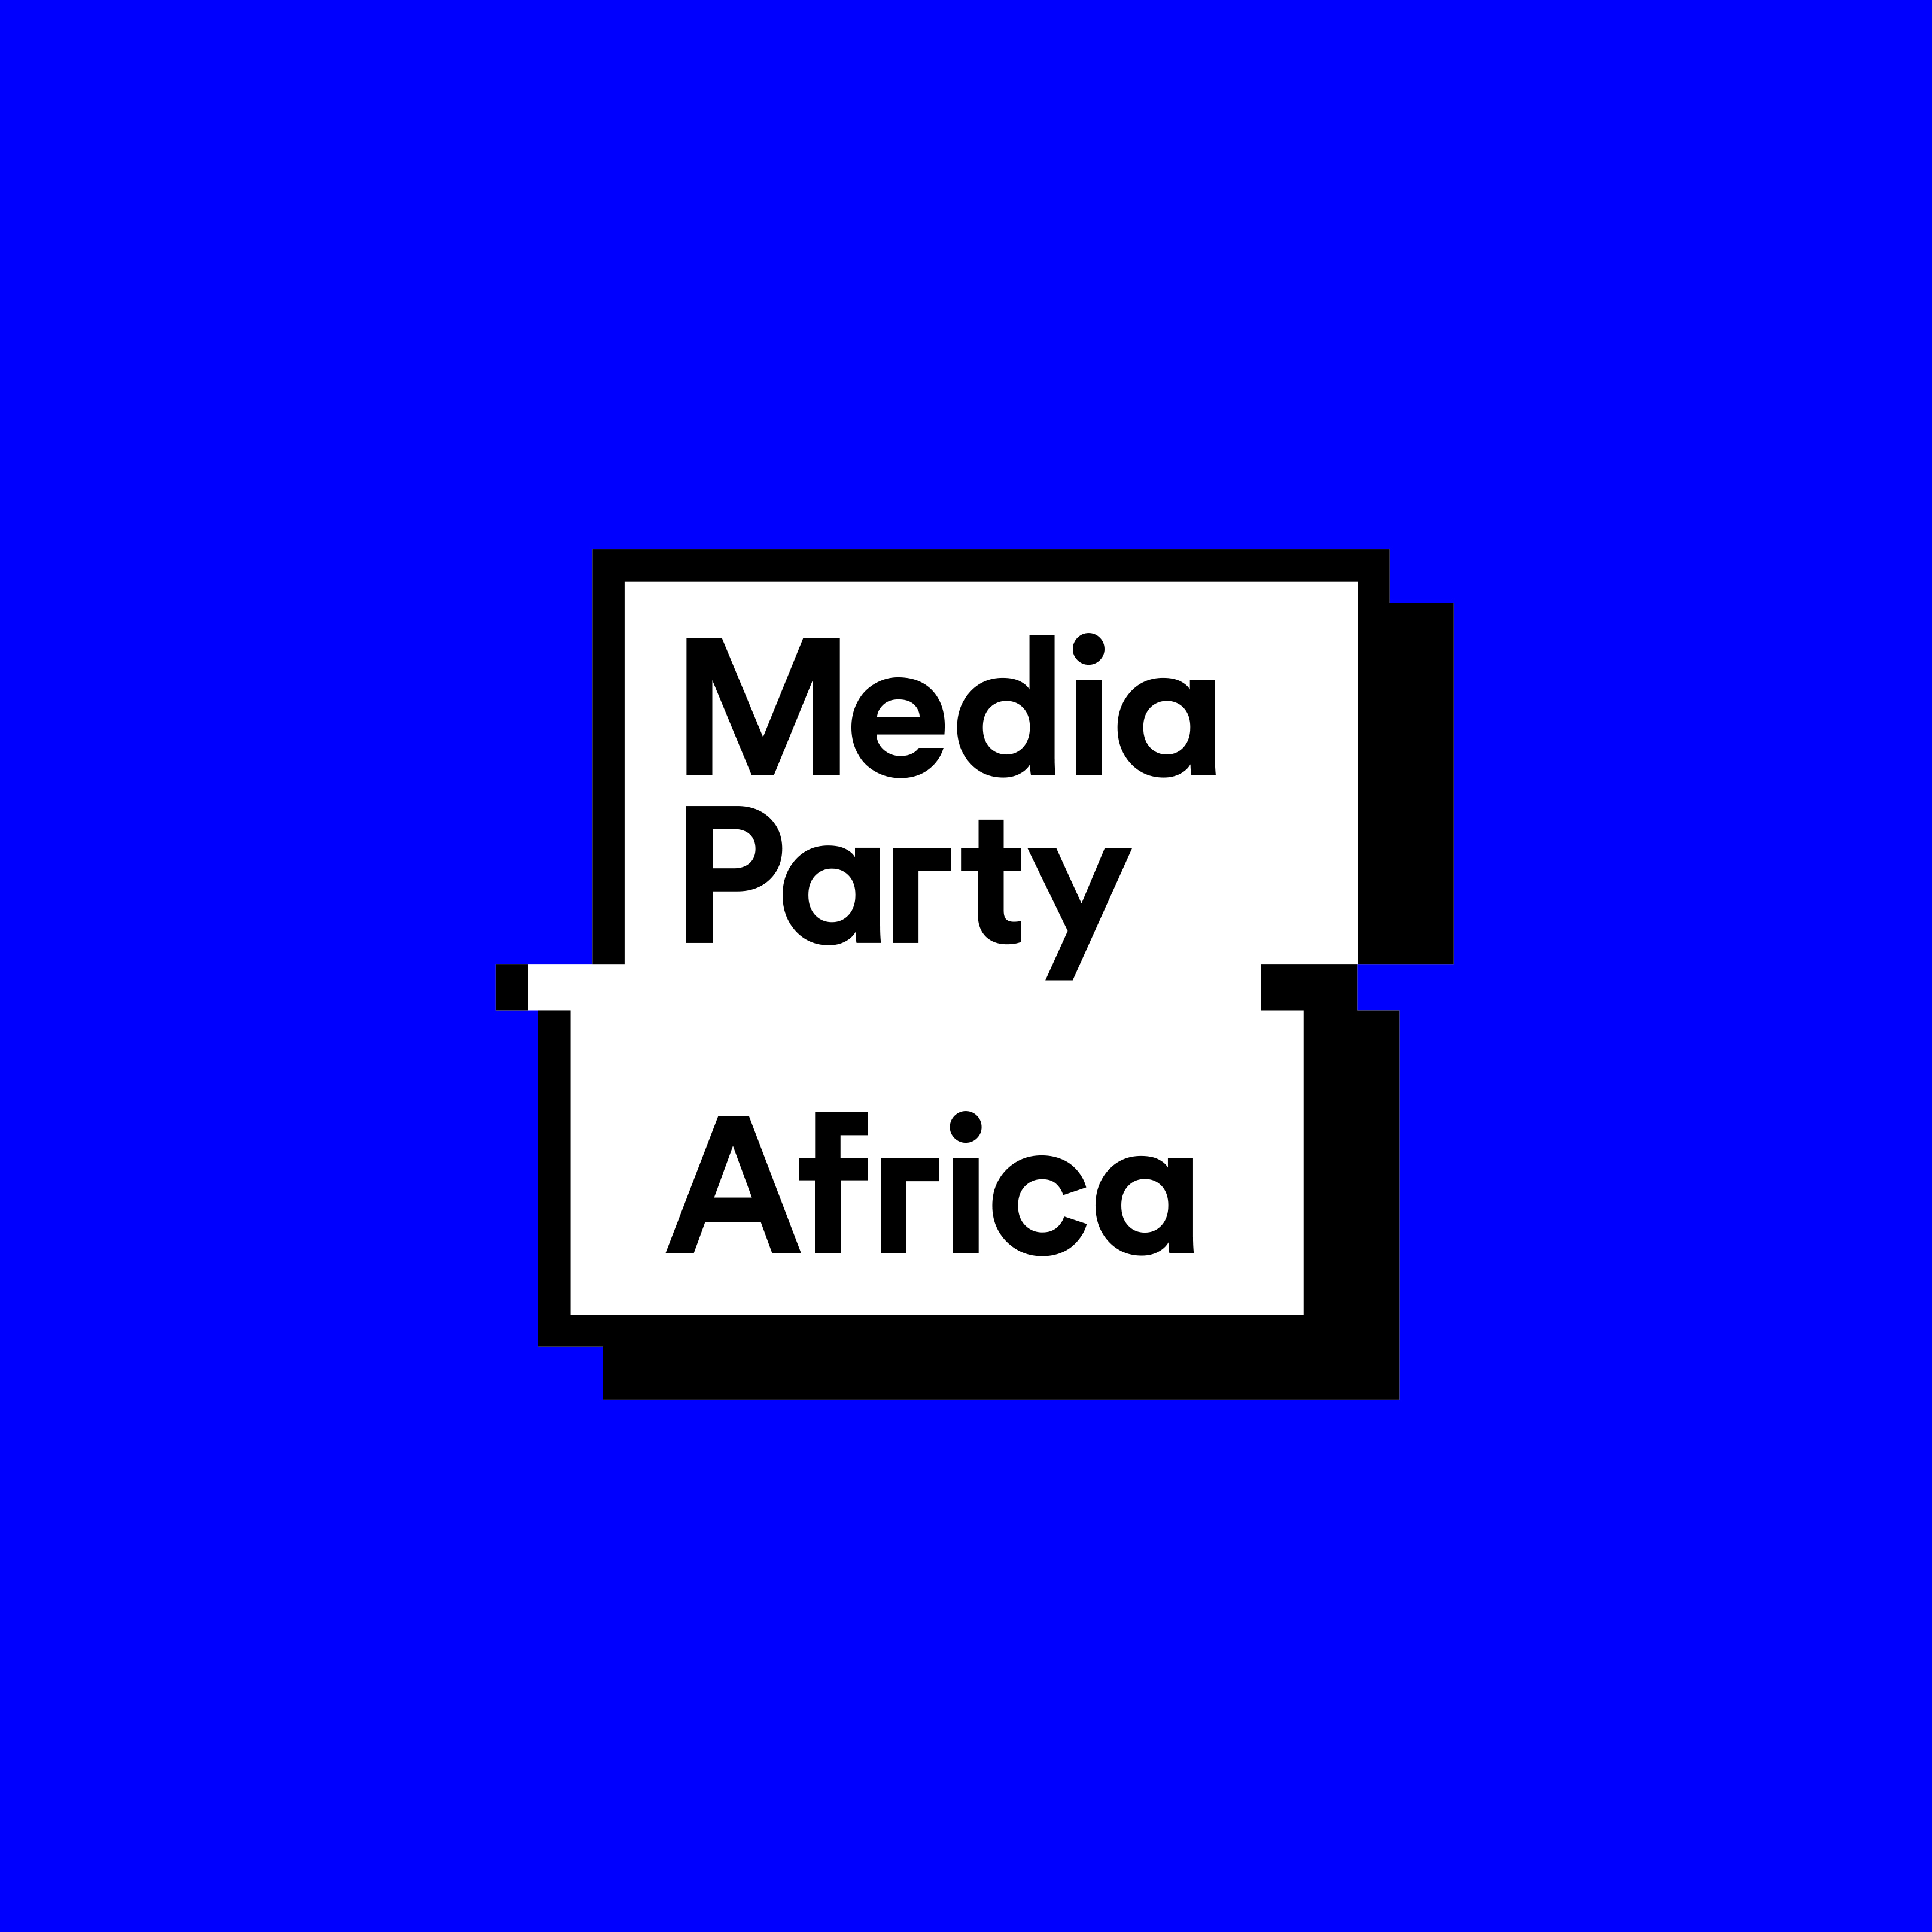 Media Party Africa